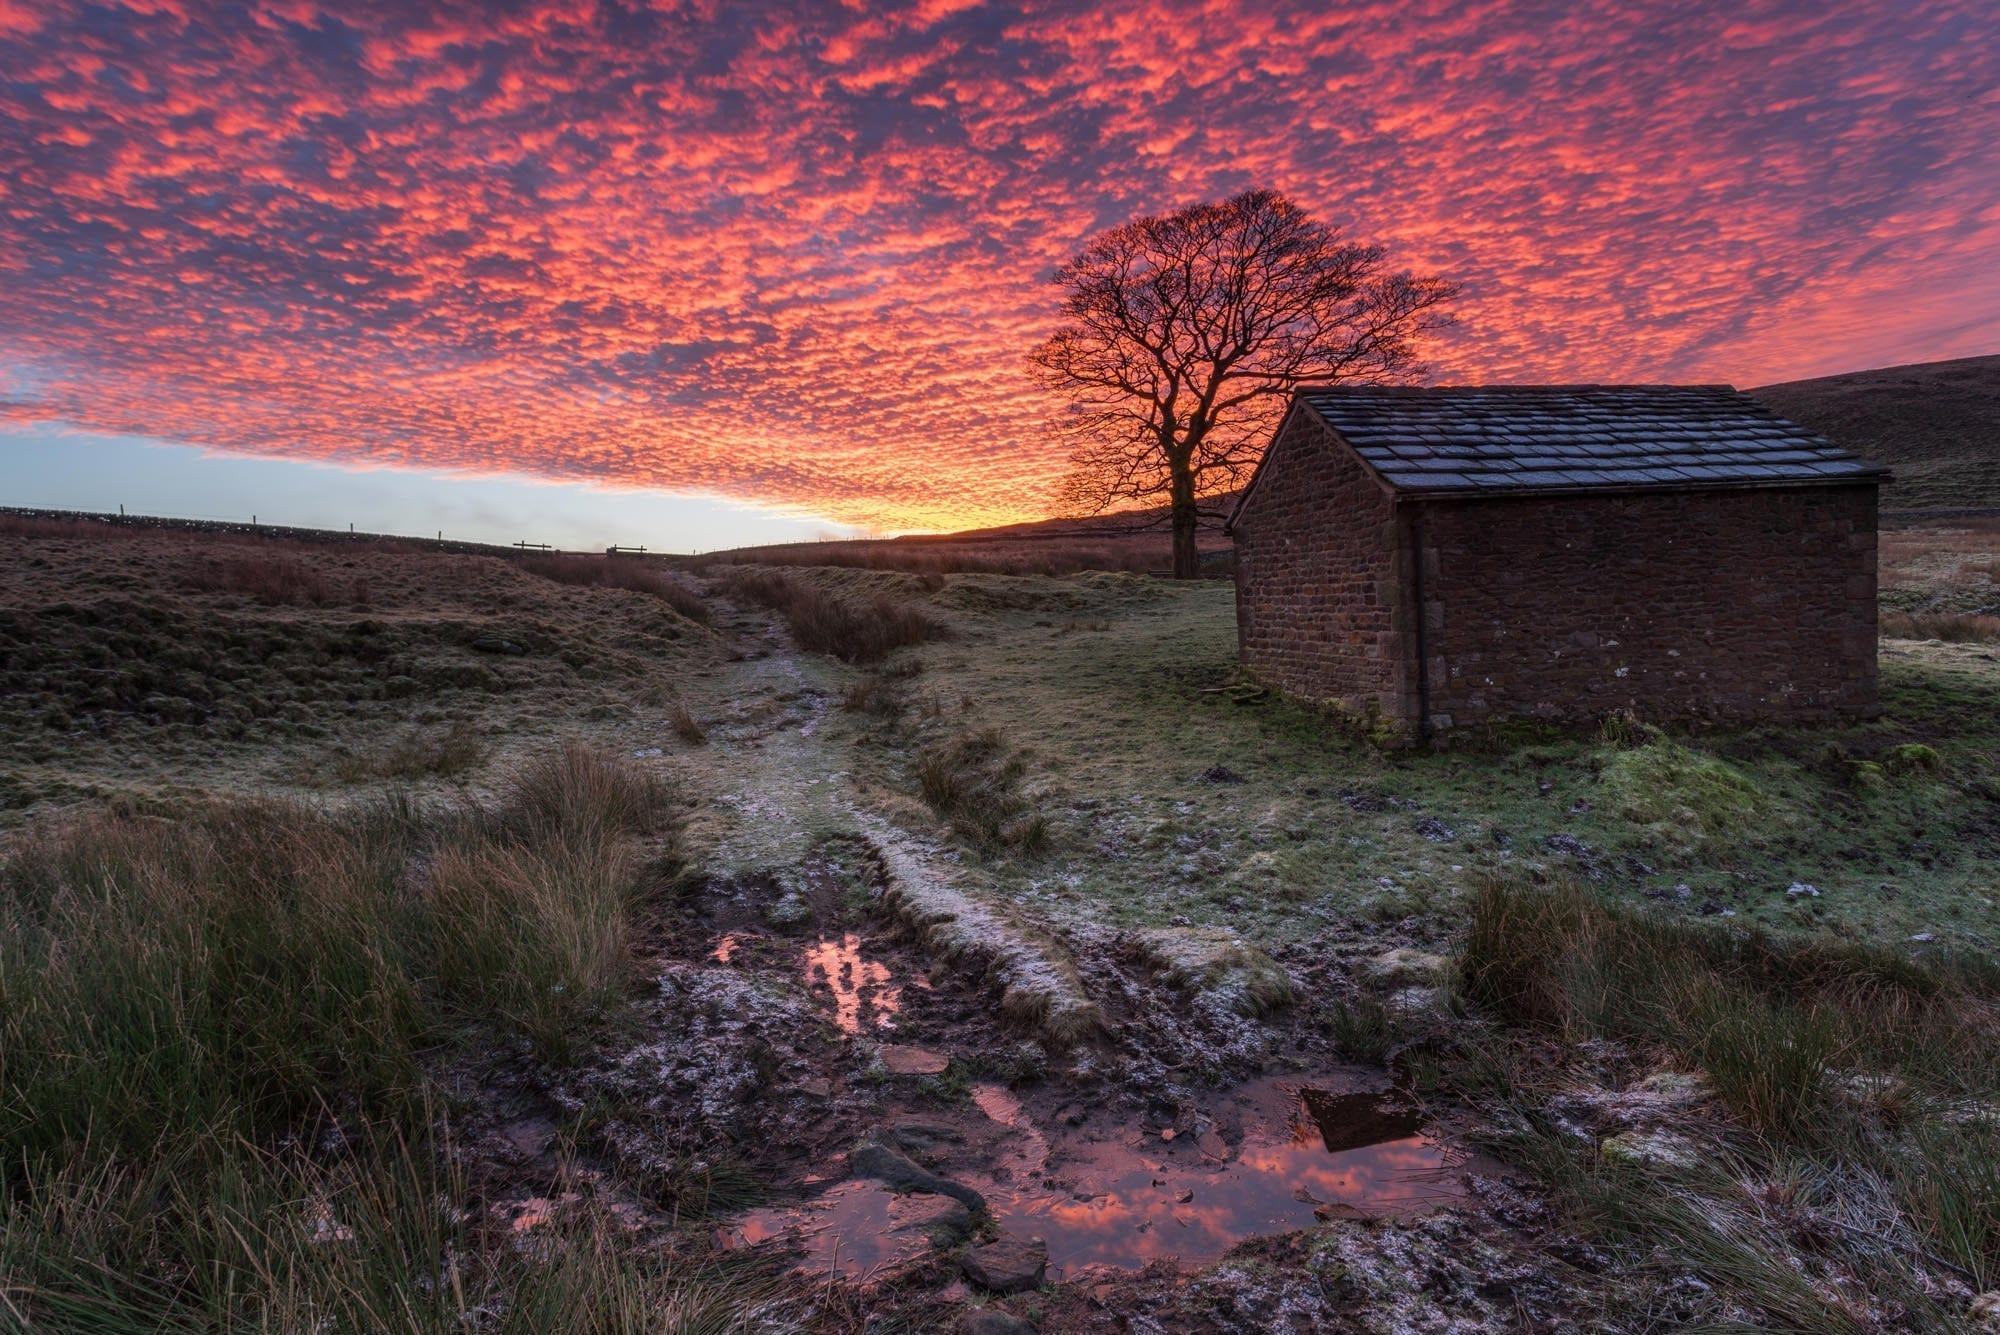 Wildboarclough Barn Fiery Sunrise - Peak District Photography